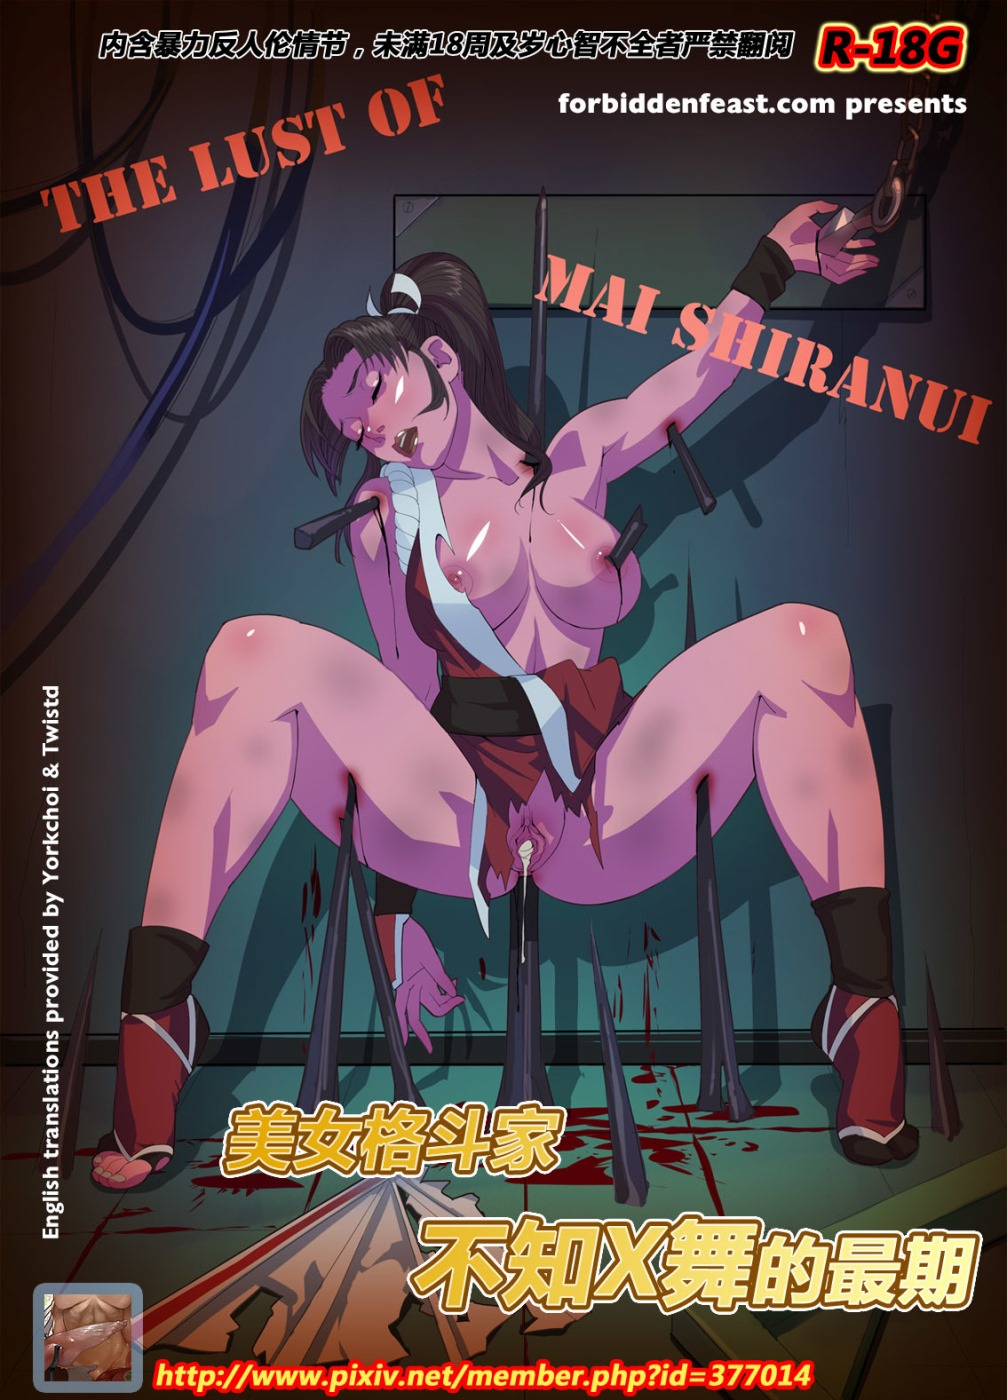 King of Fighters- Lust of Mai Shiranui image 1